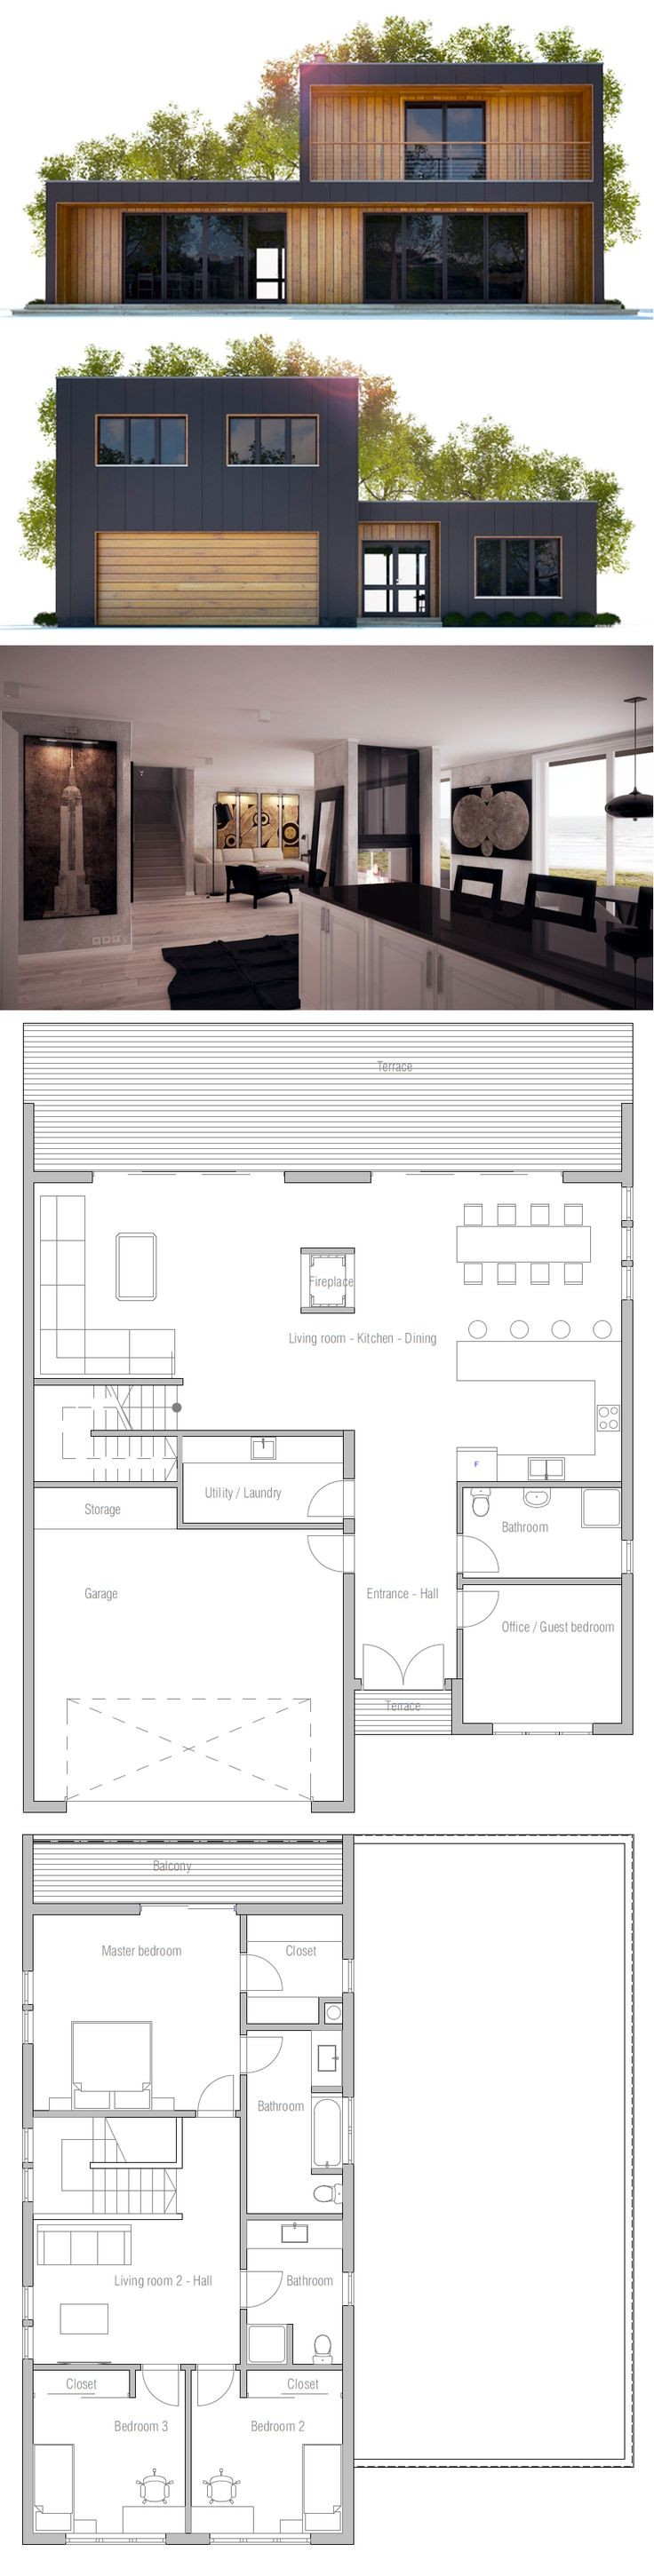 container house house plan distribucin who else wants simple step by step plans to design and build a container home from scratch - Simple Modern House Plans